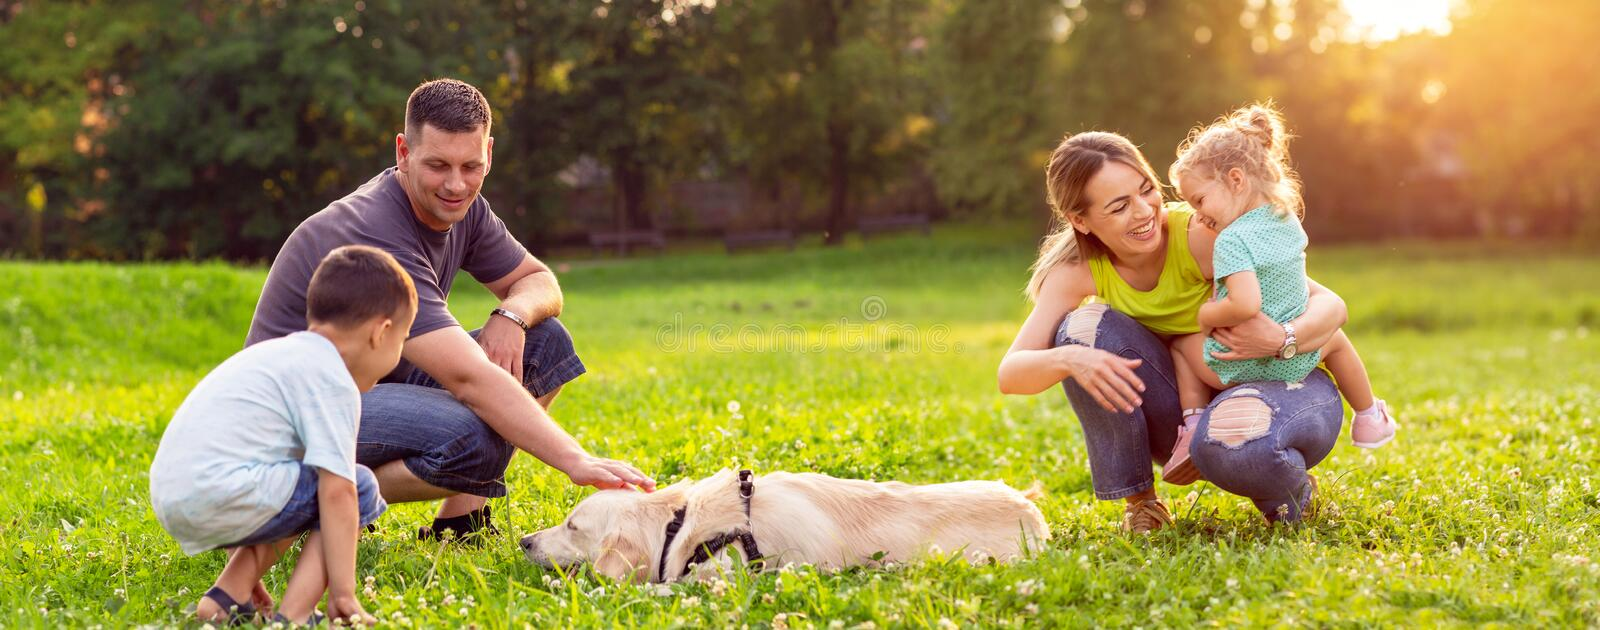 happy family is having fun with golden retriever - family playing with dog in park. stock image